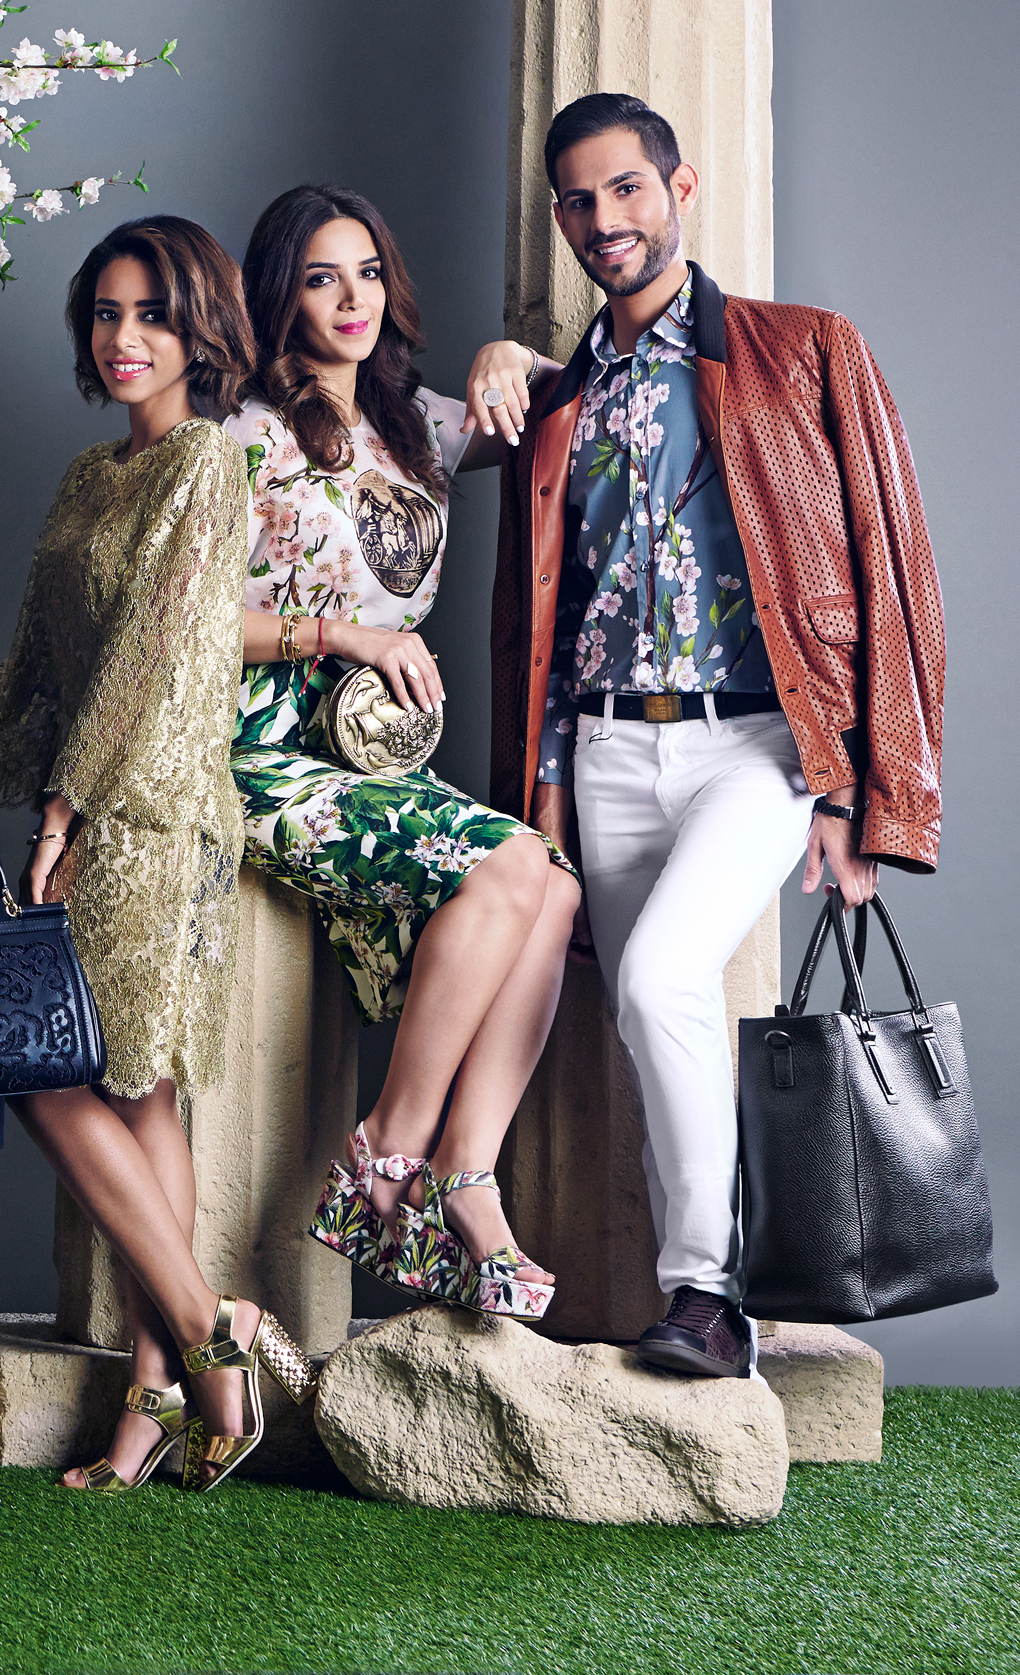 Lyla_Loves_Fashion_Dolce_&_Gabbana_family_campaign_27_5_141197_RE